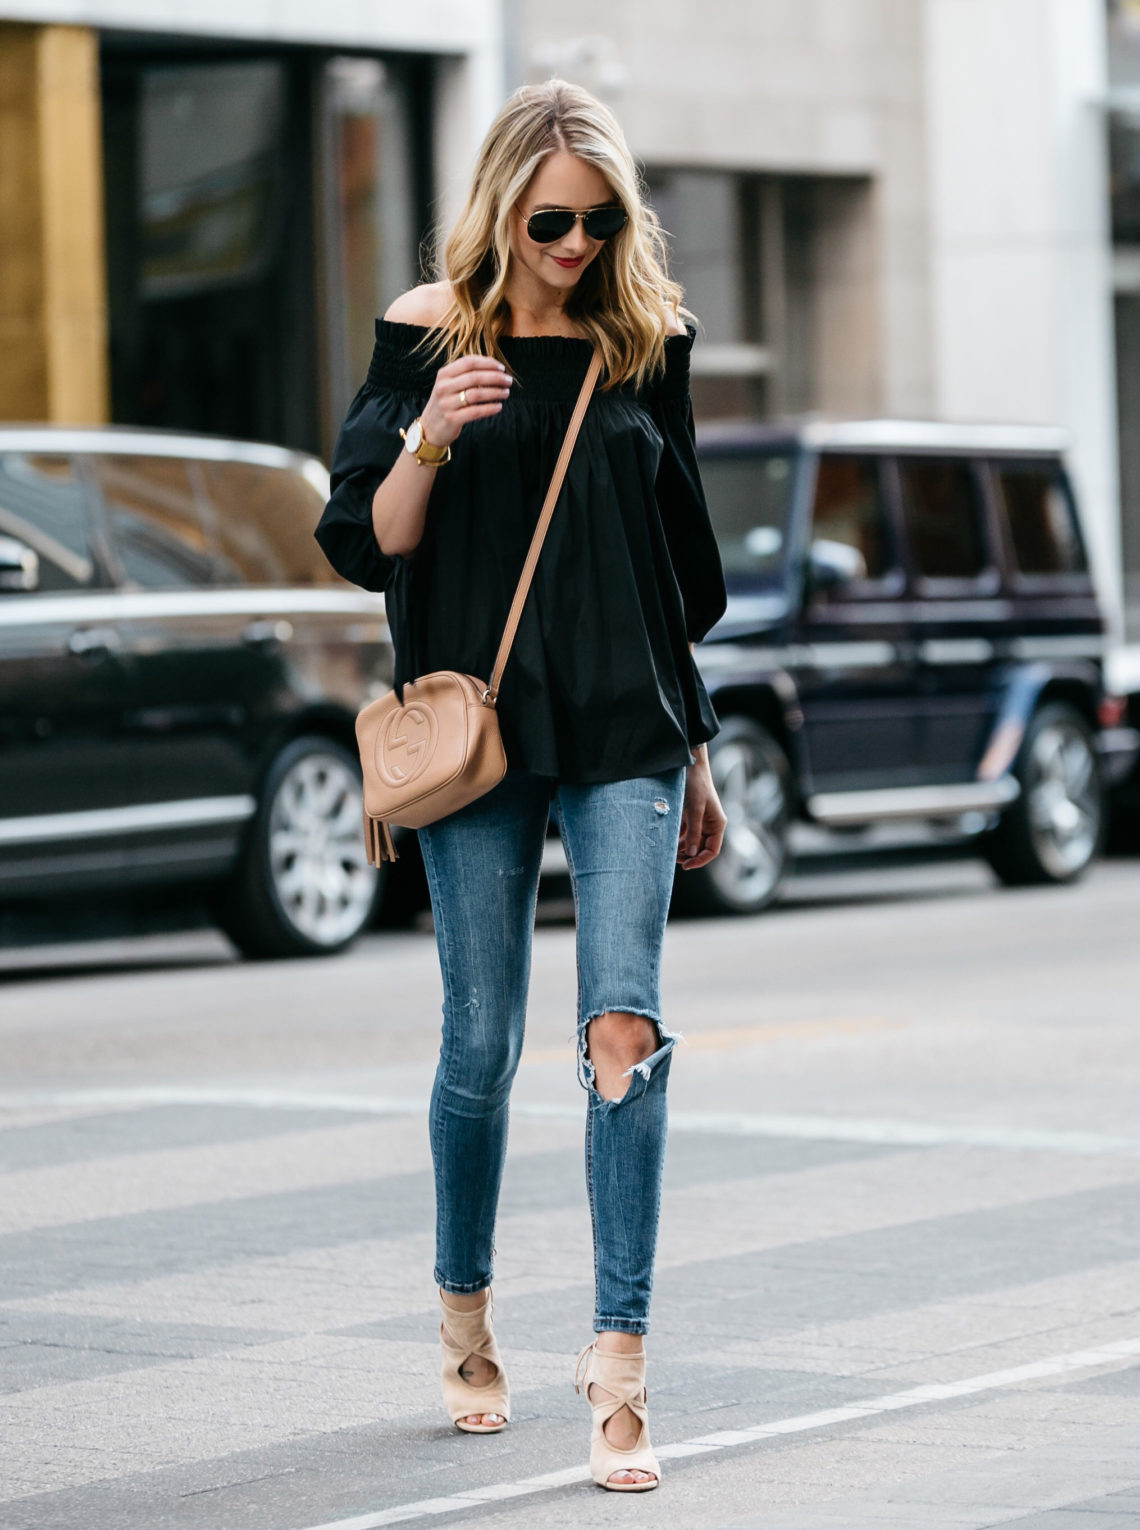 Fashion Jackson, Dallas Blogger, Fashion Blogger, Street Style, Caroline Constas Lou Off the Shoulder Top Black, Denim Ripped Skinny Jeans, Gucci Soho Disco Crossbody, Aquazzura Sexy Thing Cut Out Heels